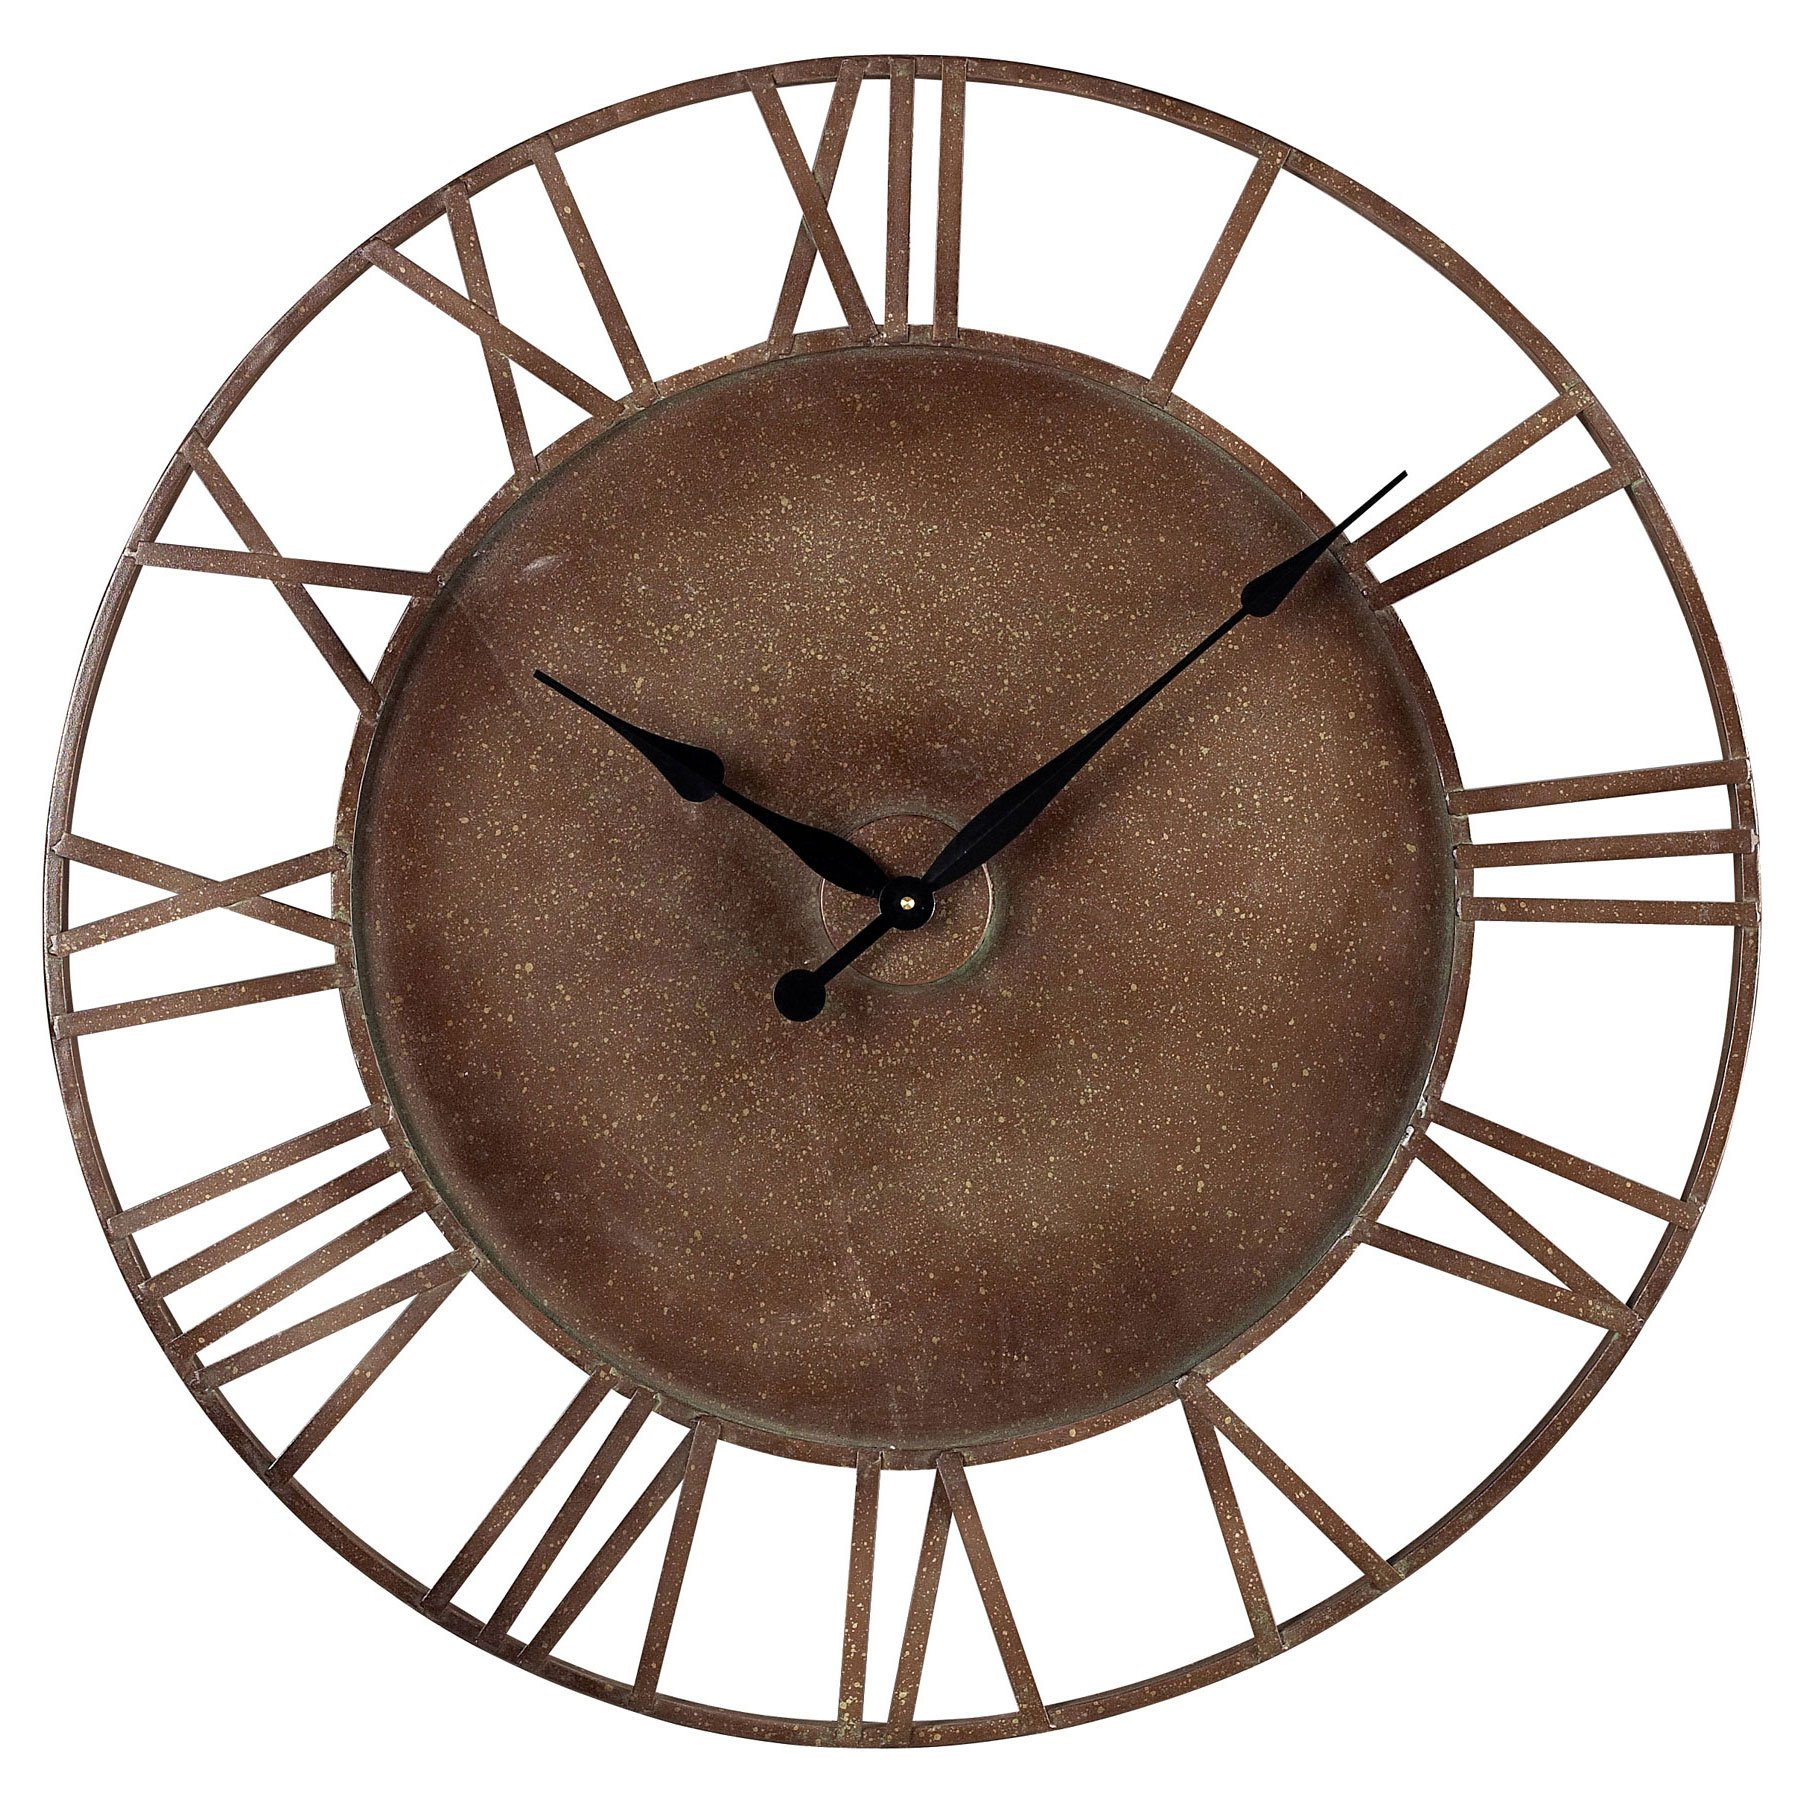 Best Outdoor Clocks: Reviews and Top Picks - Urban Turnip